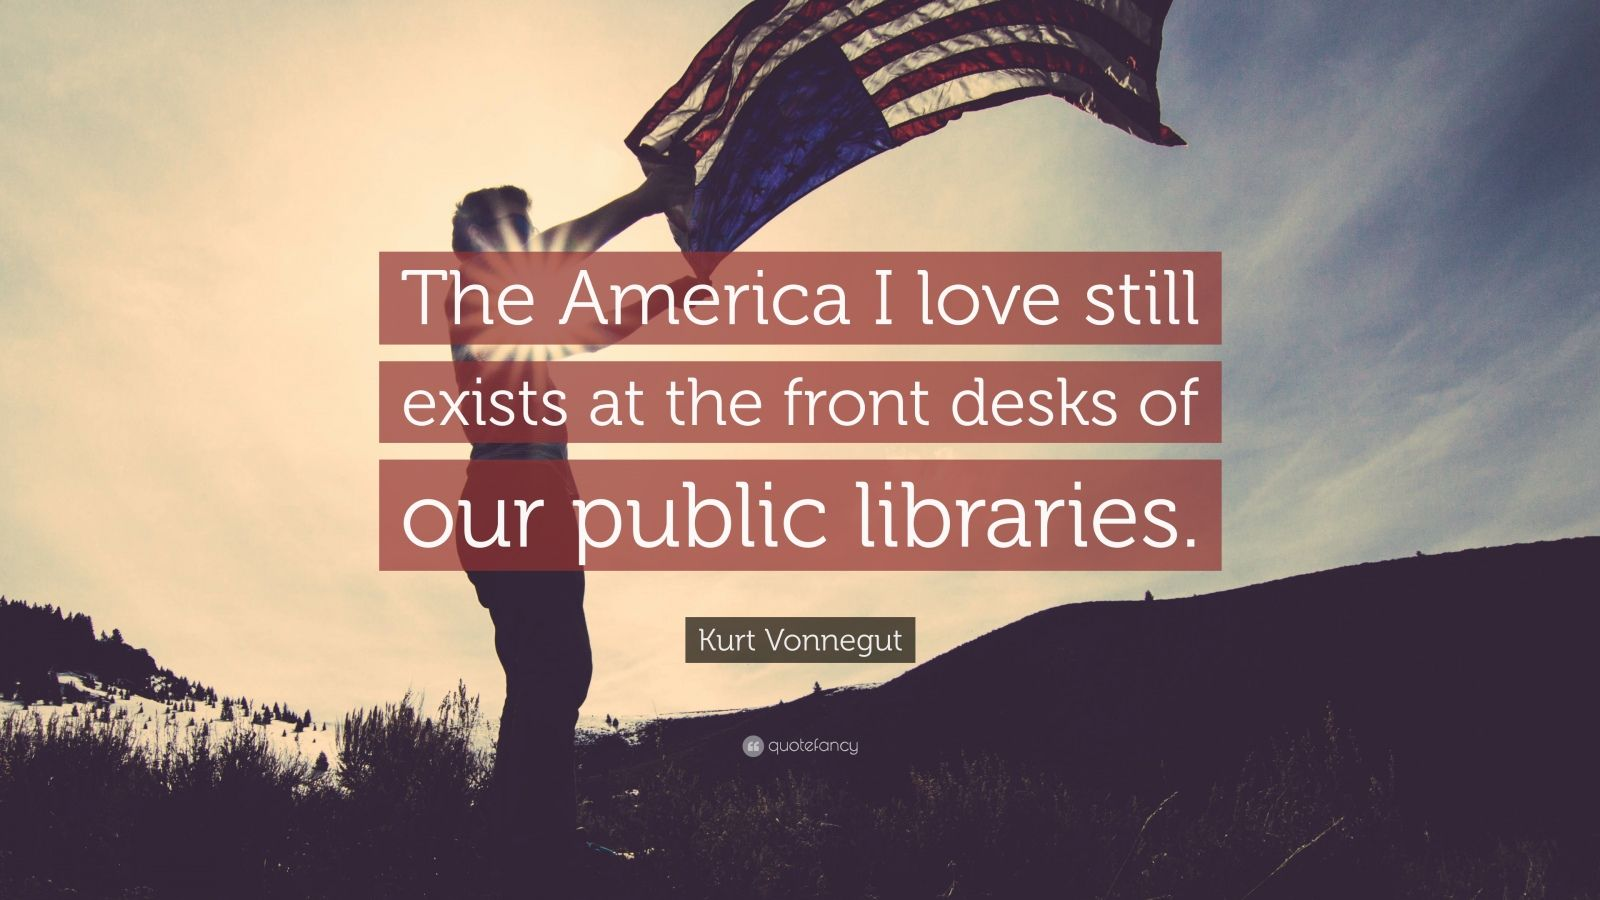 """Kurt Vonnegut Quote: """"The America I love still exists at the front desks of our public libraries."""""""